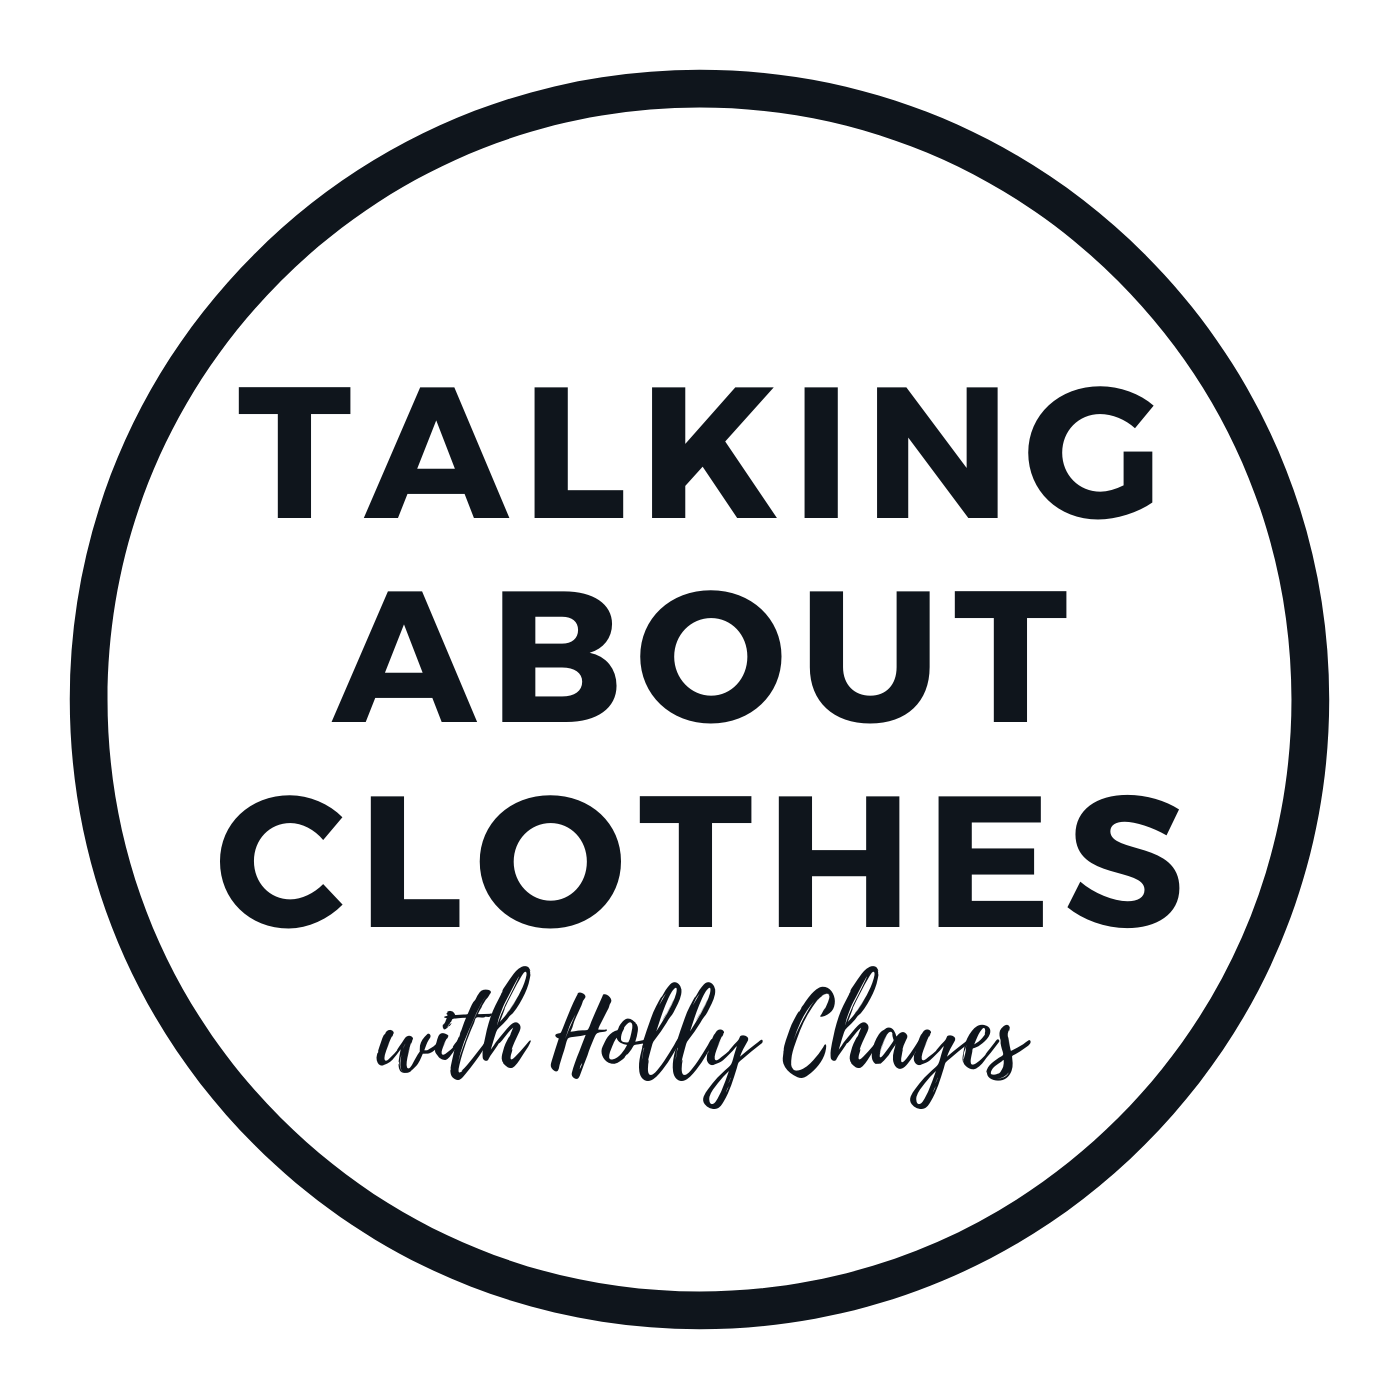 [Shopping Pre-Covid-19] High end bargain hunting and clothing related identity crises with Natalie Que